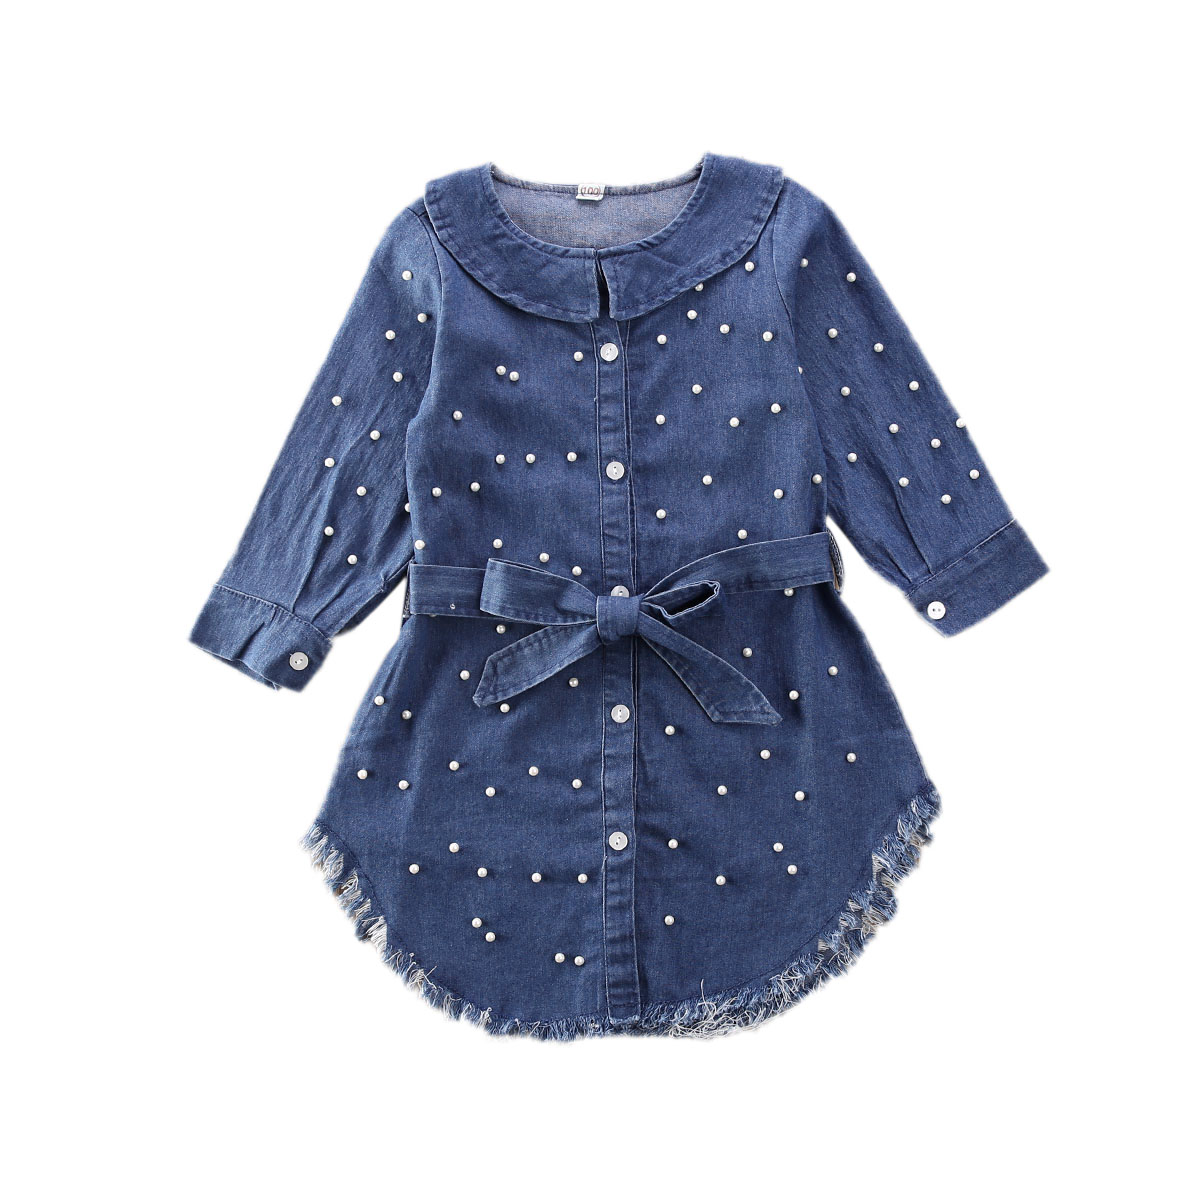 New Kids Blue Pearl Bowknot Denim Jeans Baby <font><b>Girl</b></font> Long Sleeve <font><b>T</b></font>-<font><b>Shirt</b></font> <font><b>Girls</b></font> <font><b>Dress</b></font> Kid Coat Toddler Clothes image